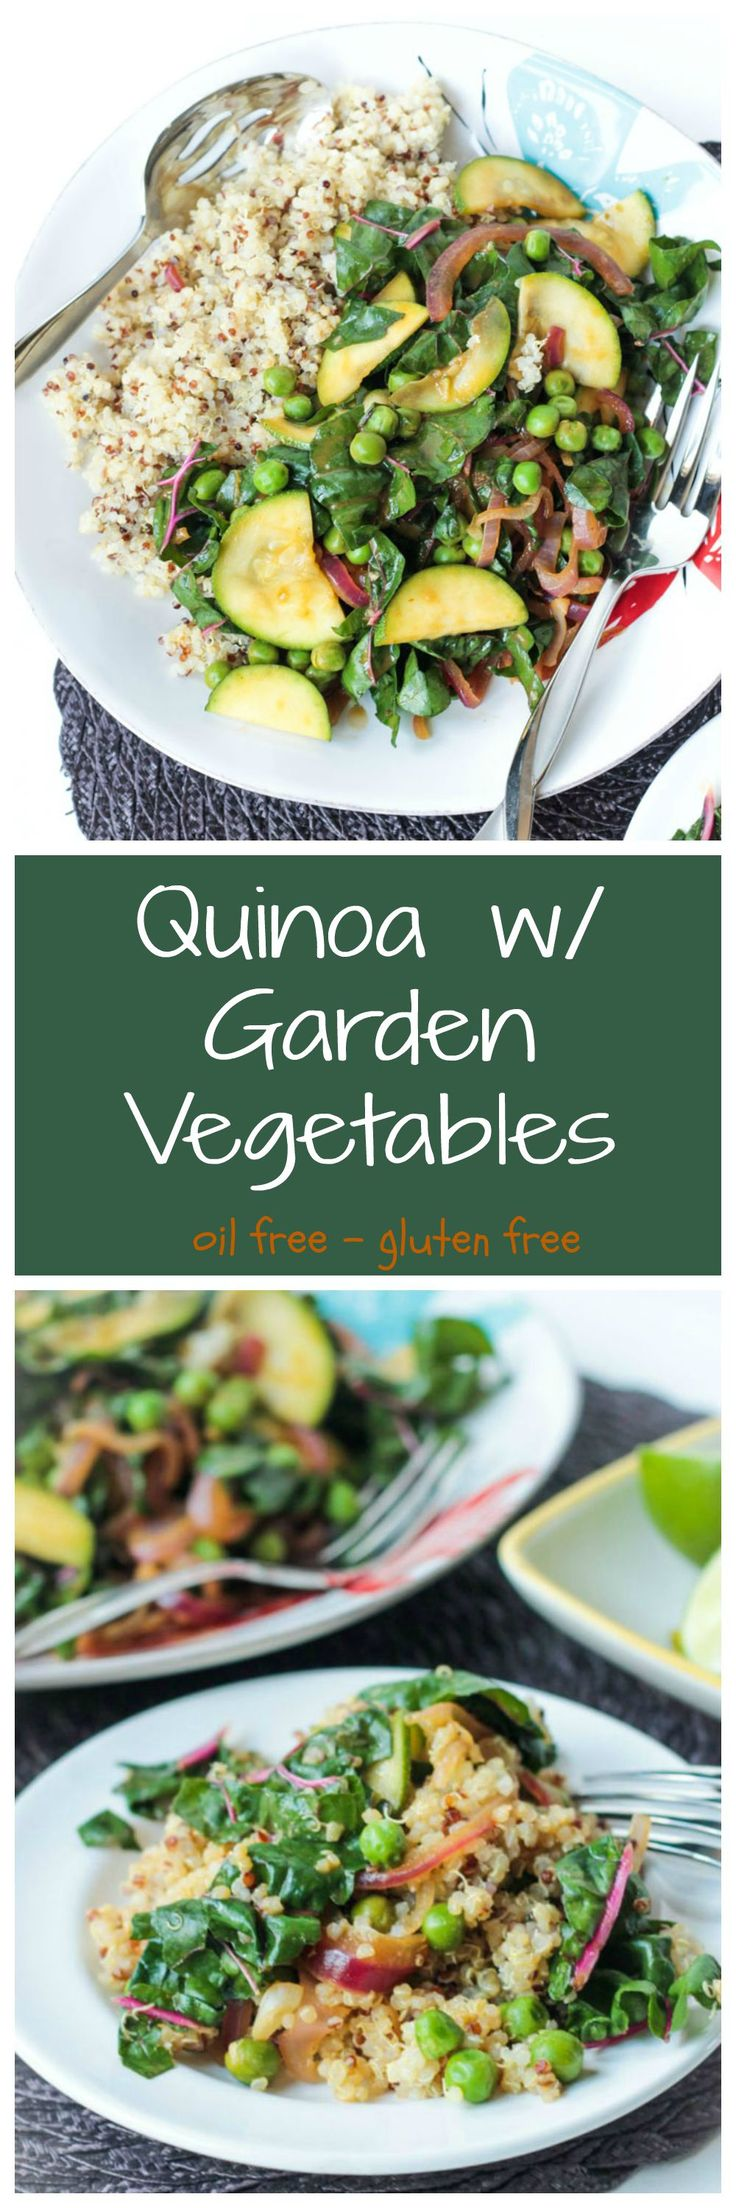 Quinoa w/ Garden Vegetables - taking advantage of the summer garden and full of plant protein, this dish is the perfect healthy side or light main meal. #vegan #quinoa #healthy #wfpb #garden #veggies